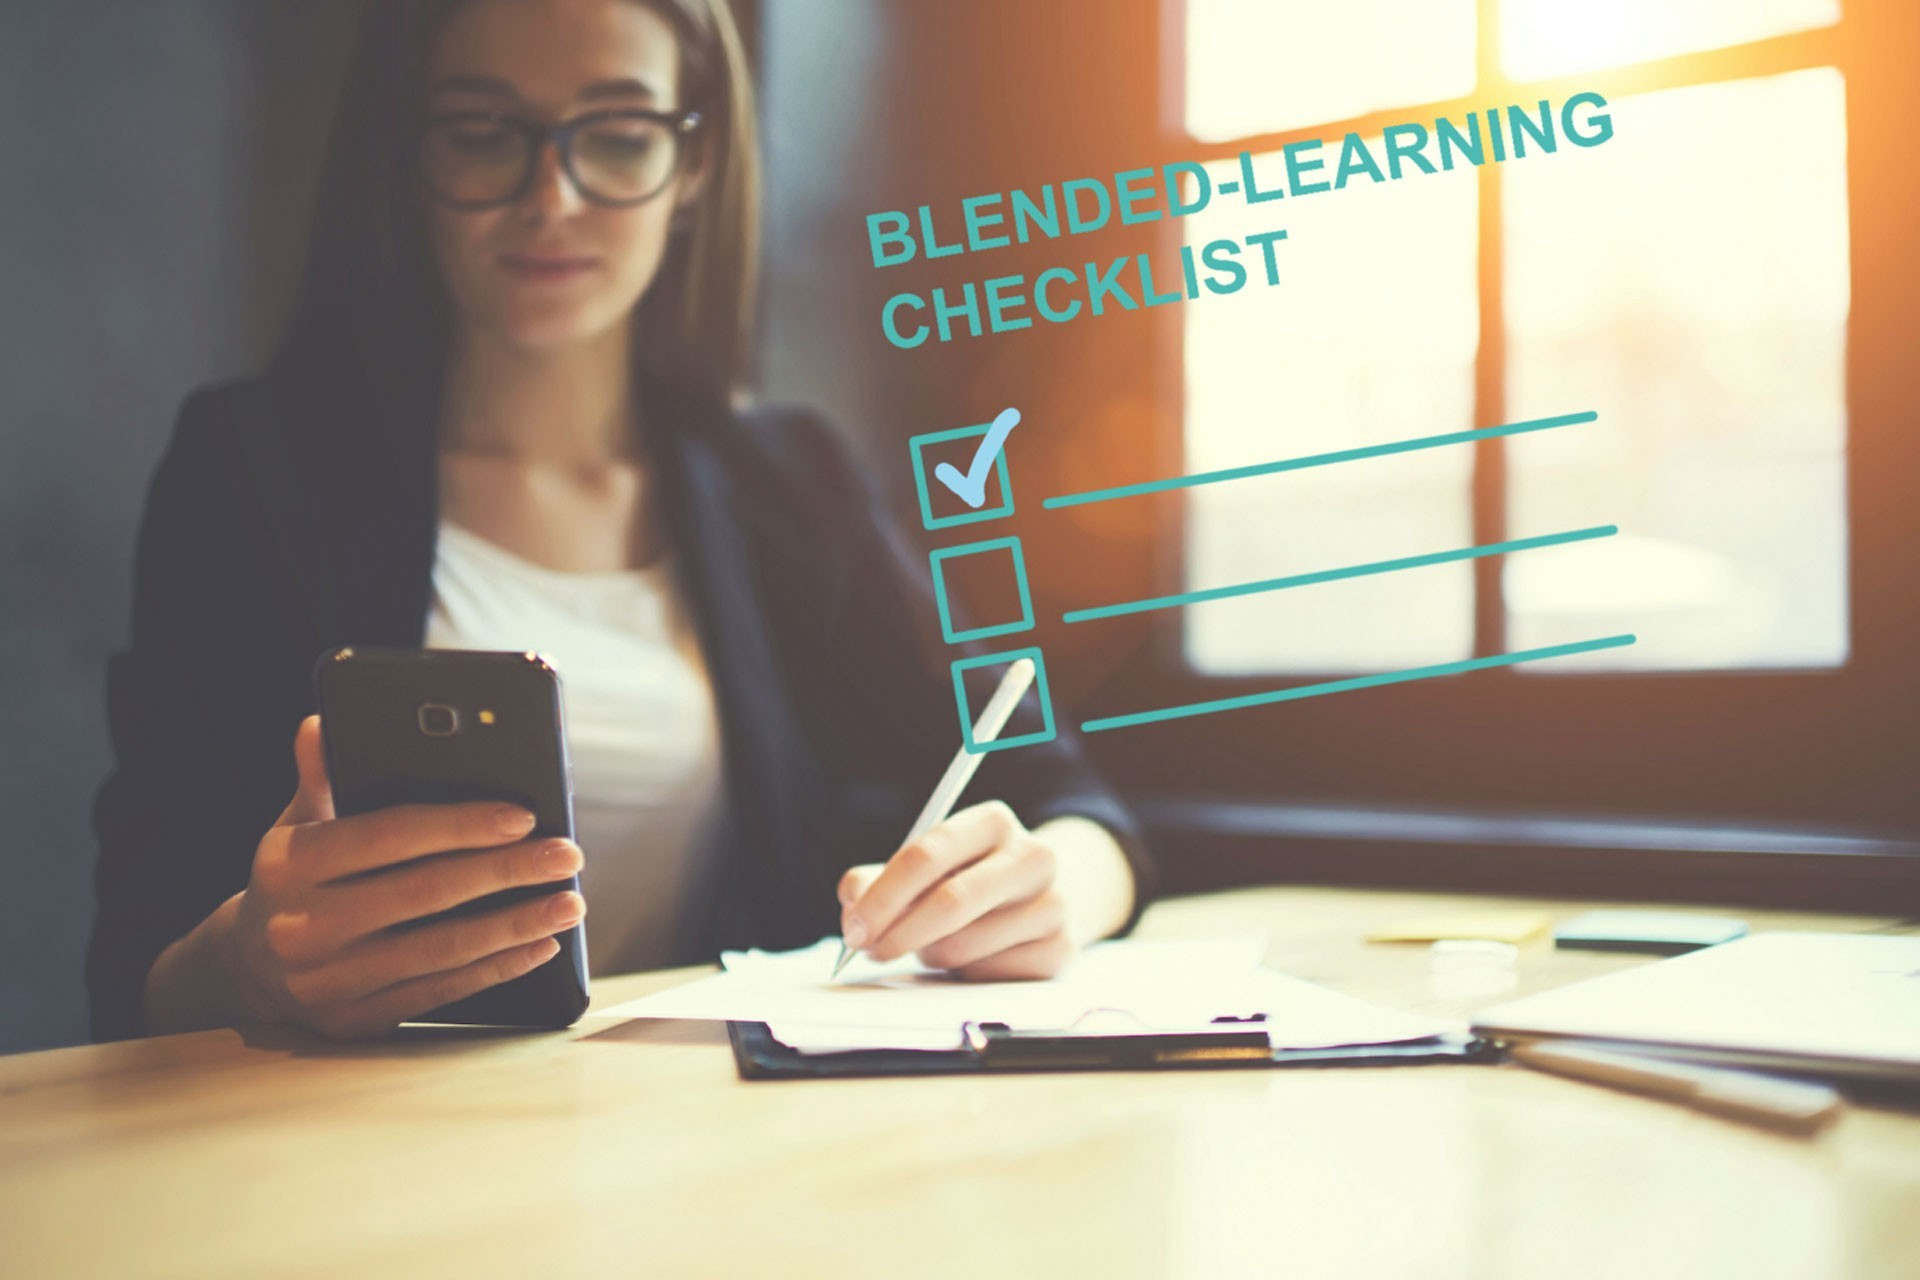 intao-blended-learning-checklist-hero